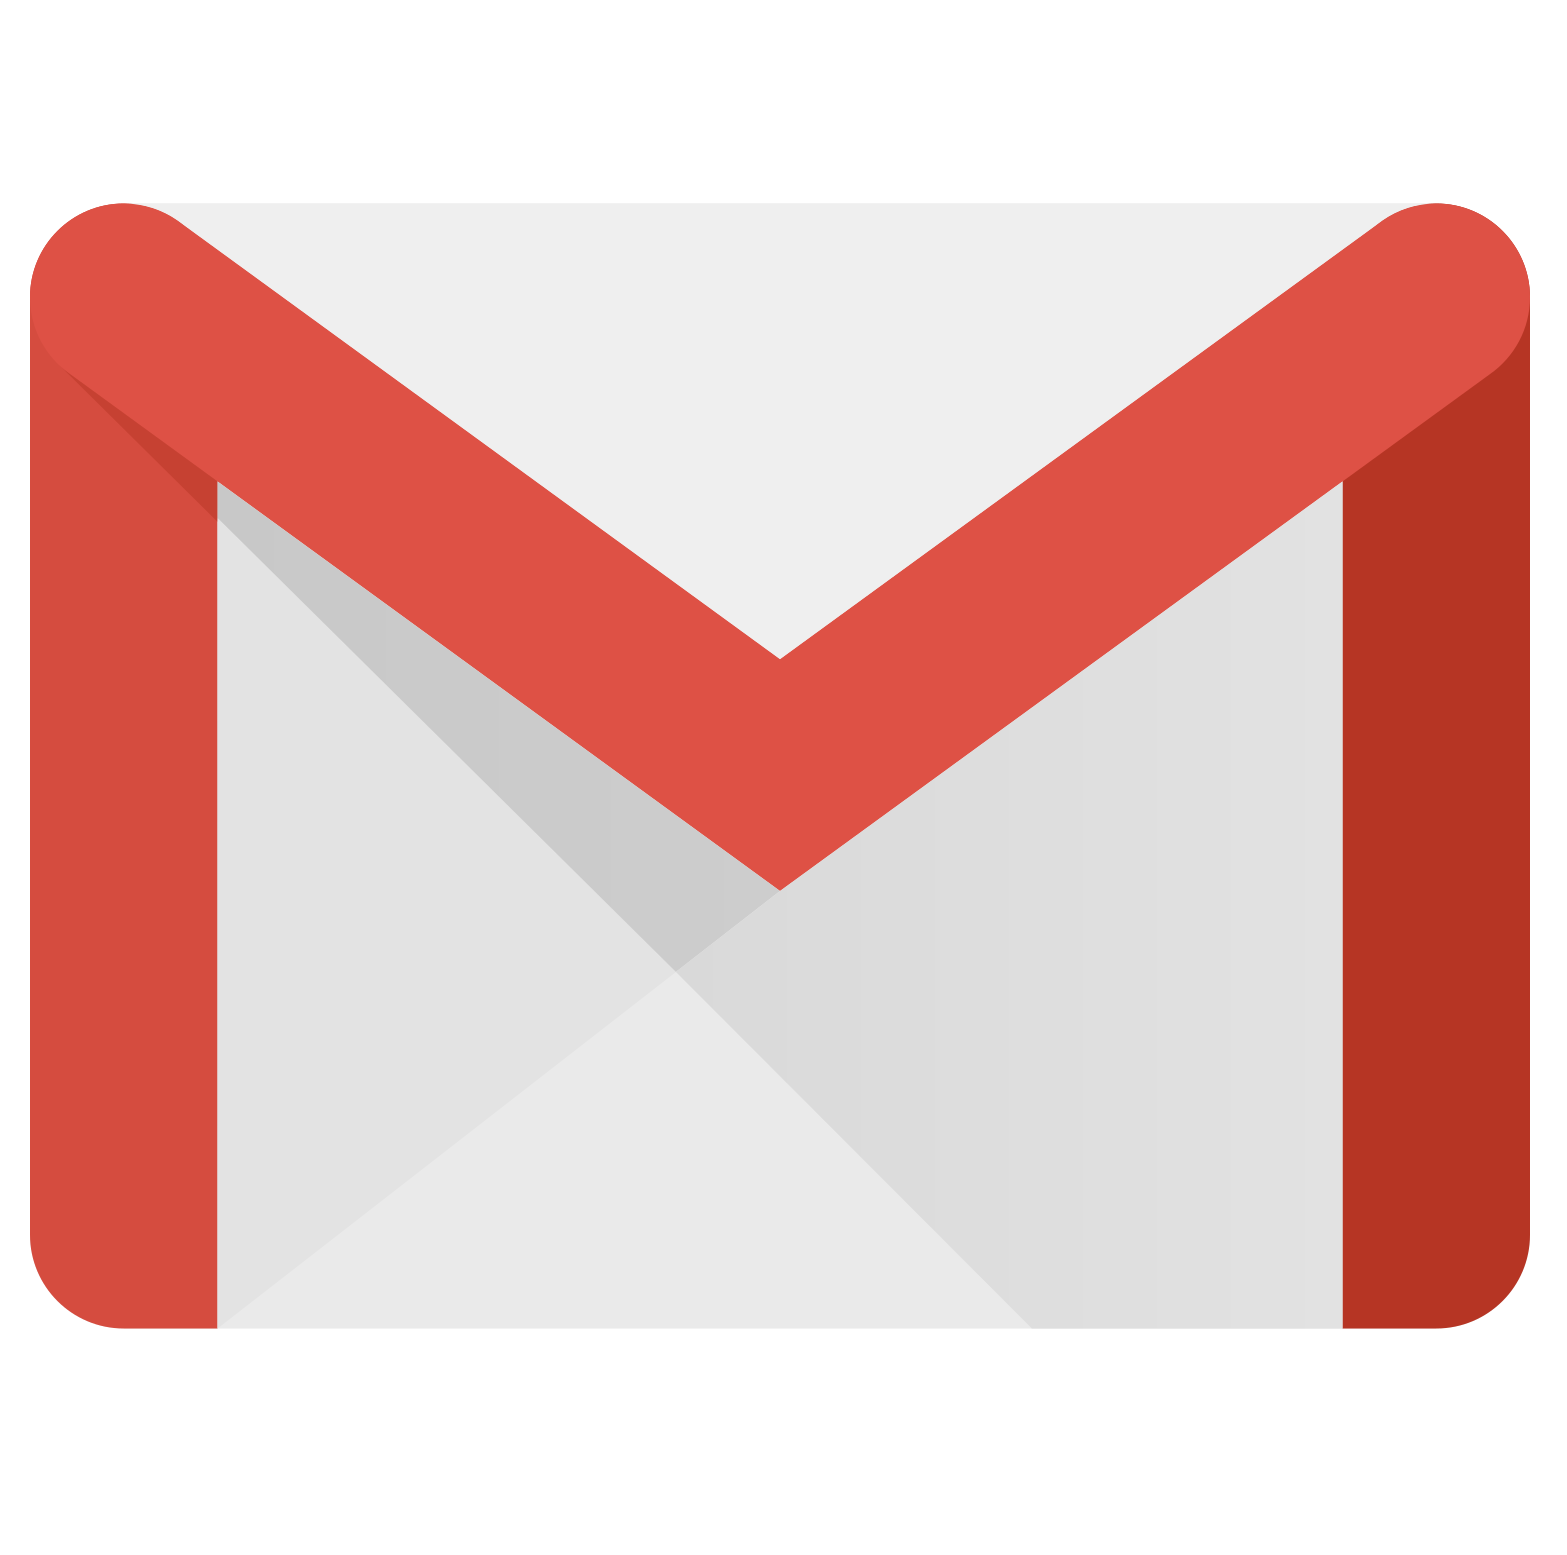 Photos Icons Google Computer Gmail PNG Image High Quality PNG Image